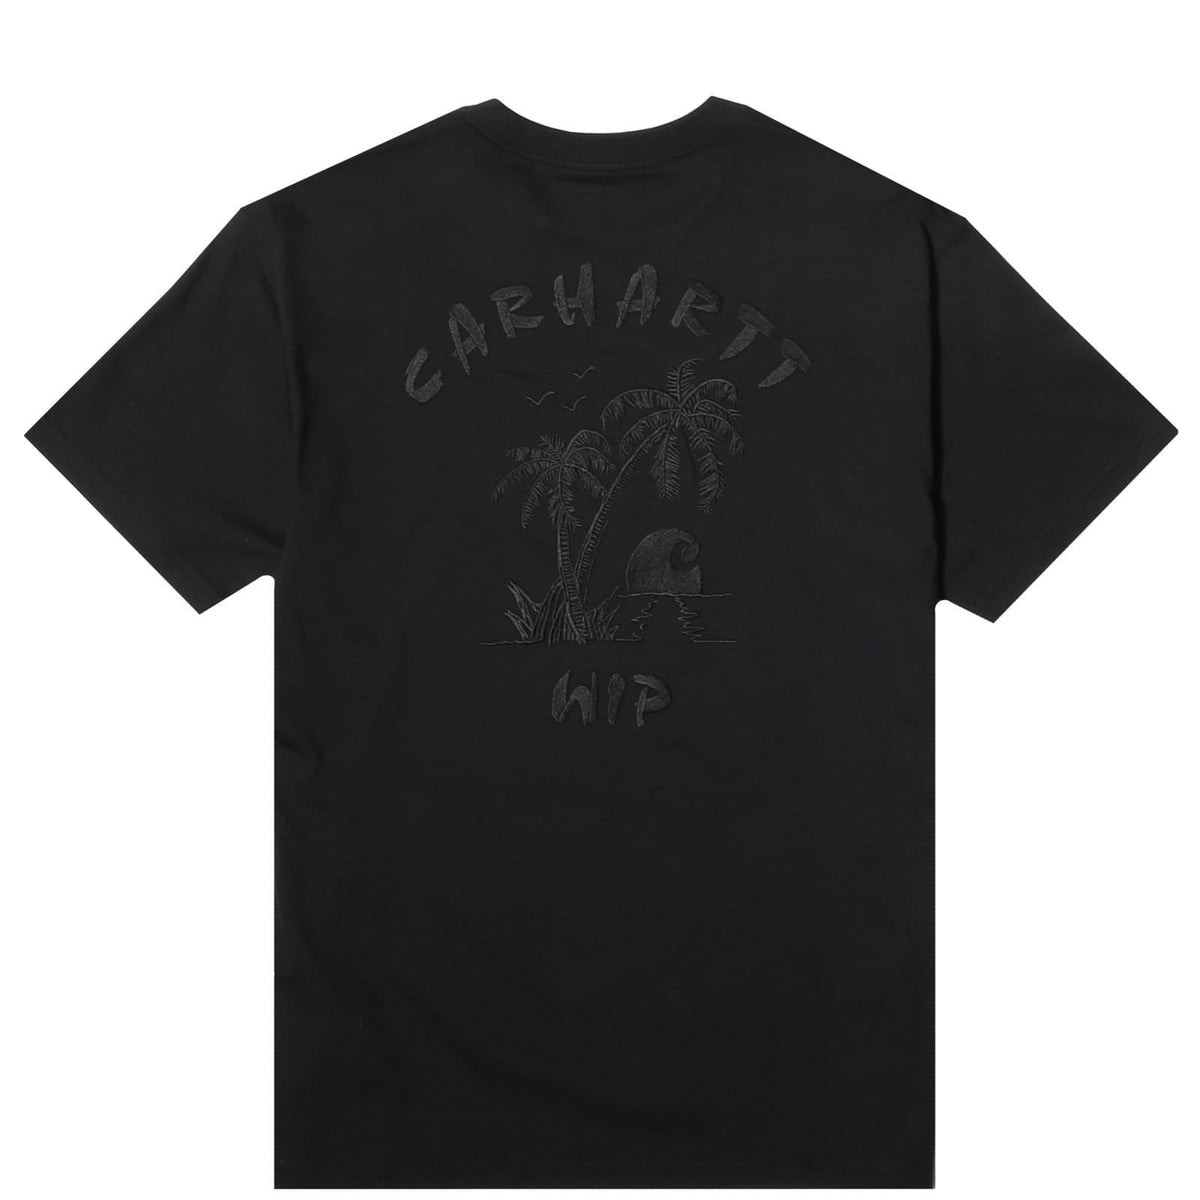 Carhartt WIP S//S Souvenir Solid T-Shirt in Black